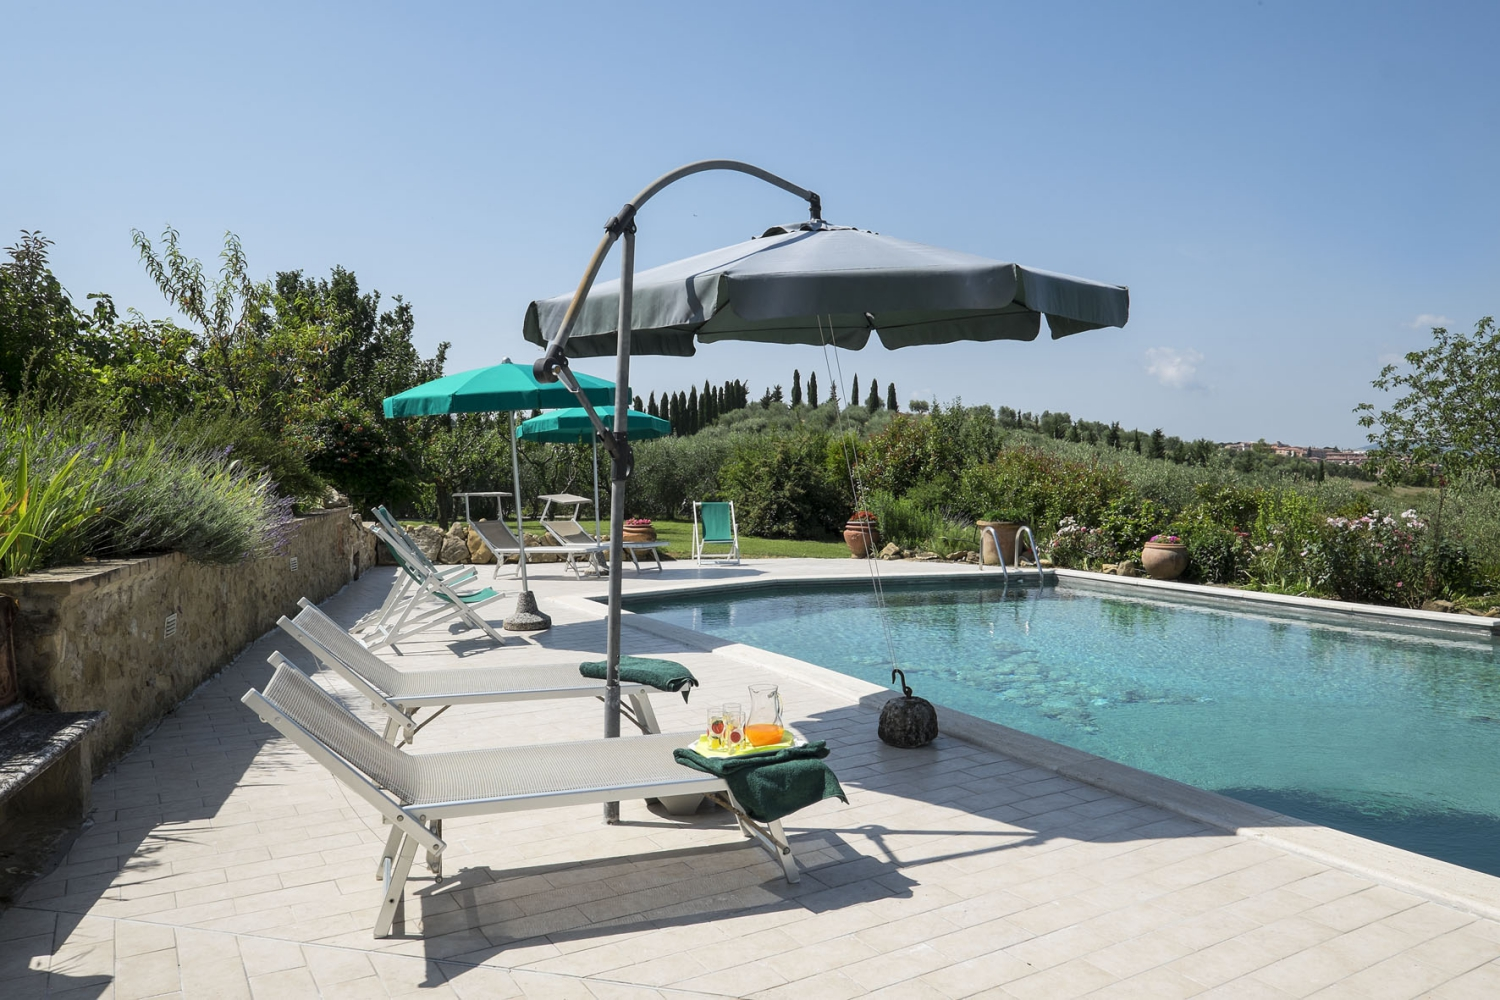 https://www.gastintoscane.nl/data/images/la-farneta/piscina-9.jpg